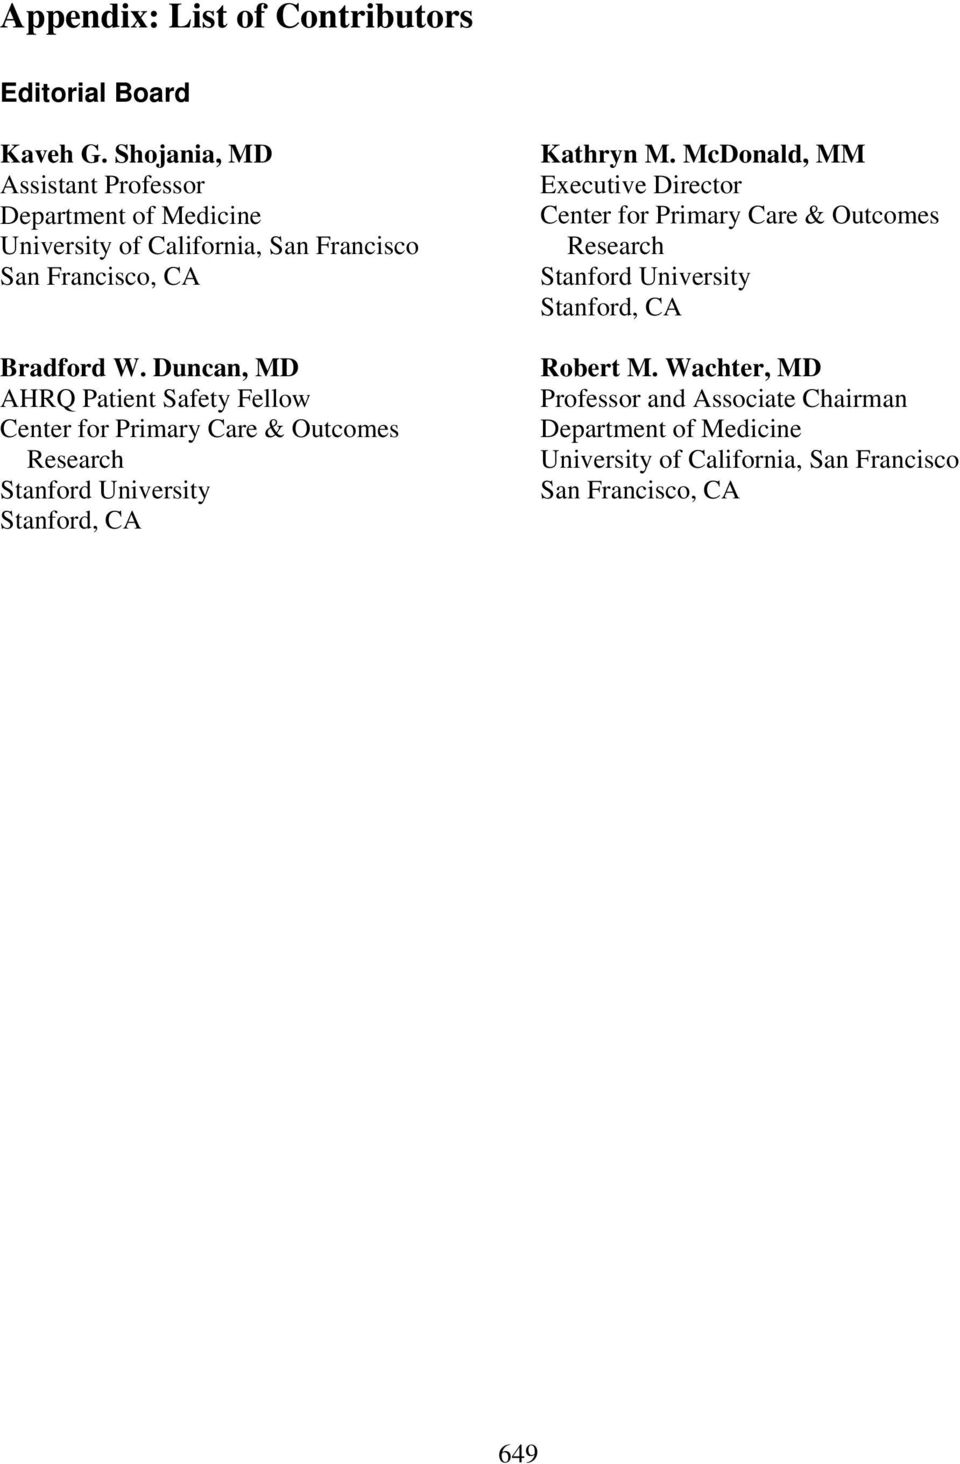 Duncan, MD AHRQ Patient Safety Fellow Center for Primary Care & Outcomes Research Stanford